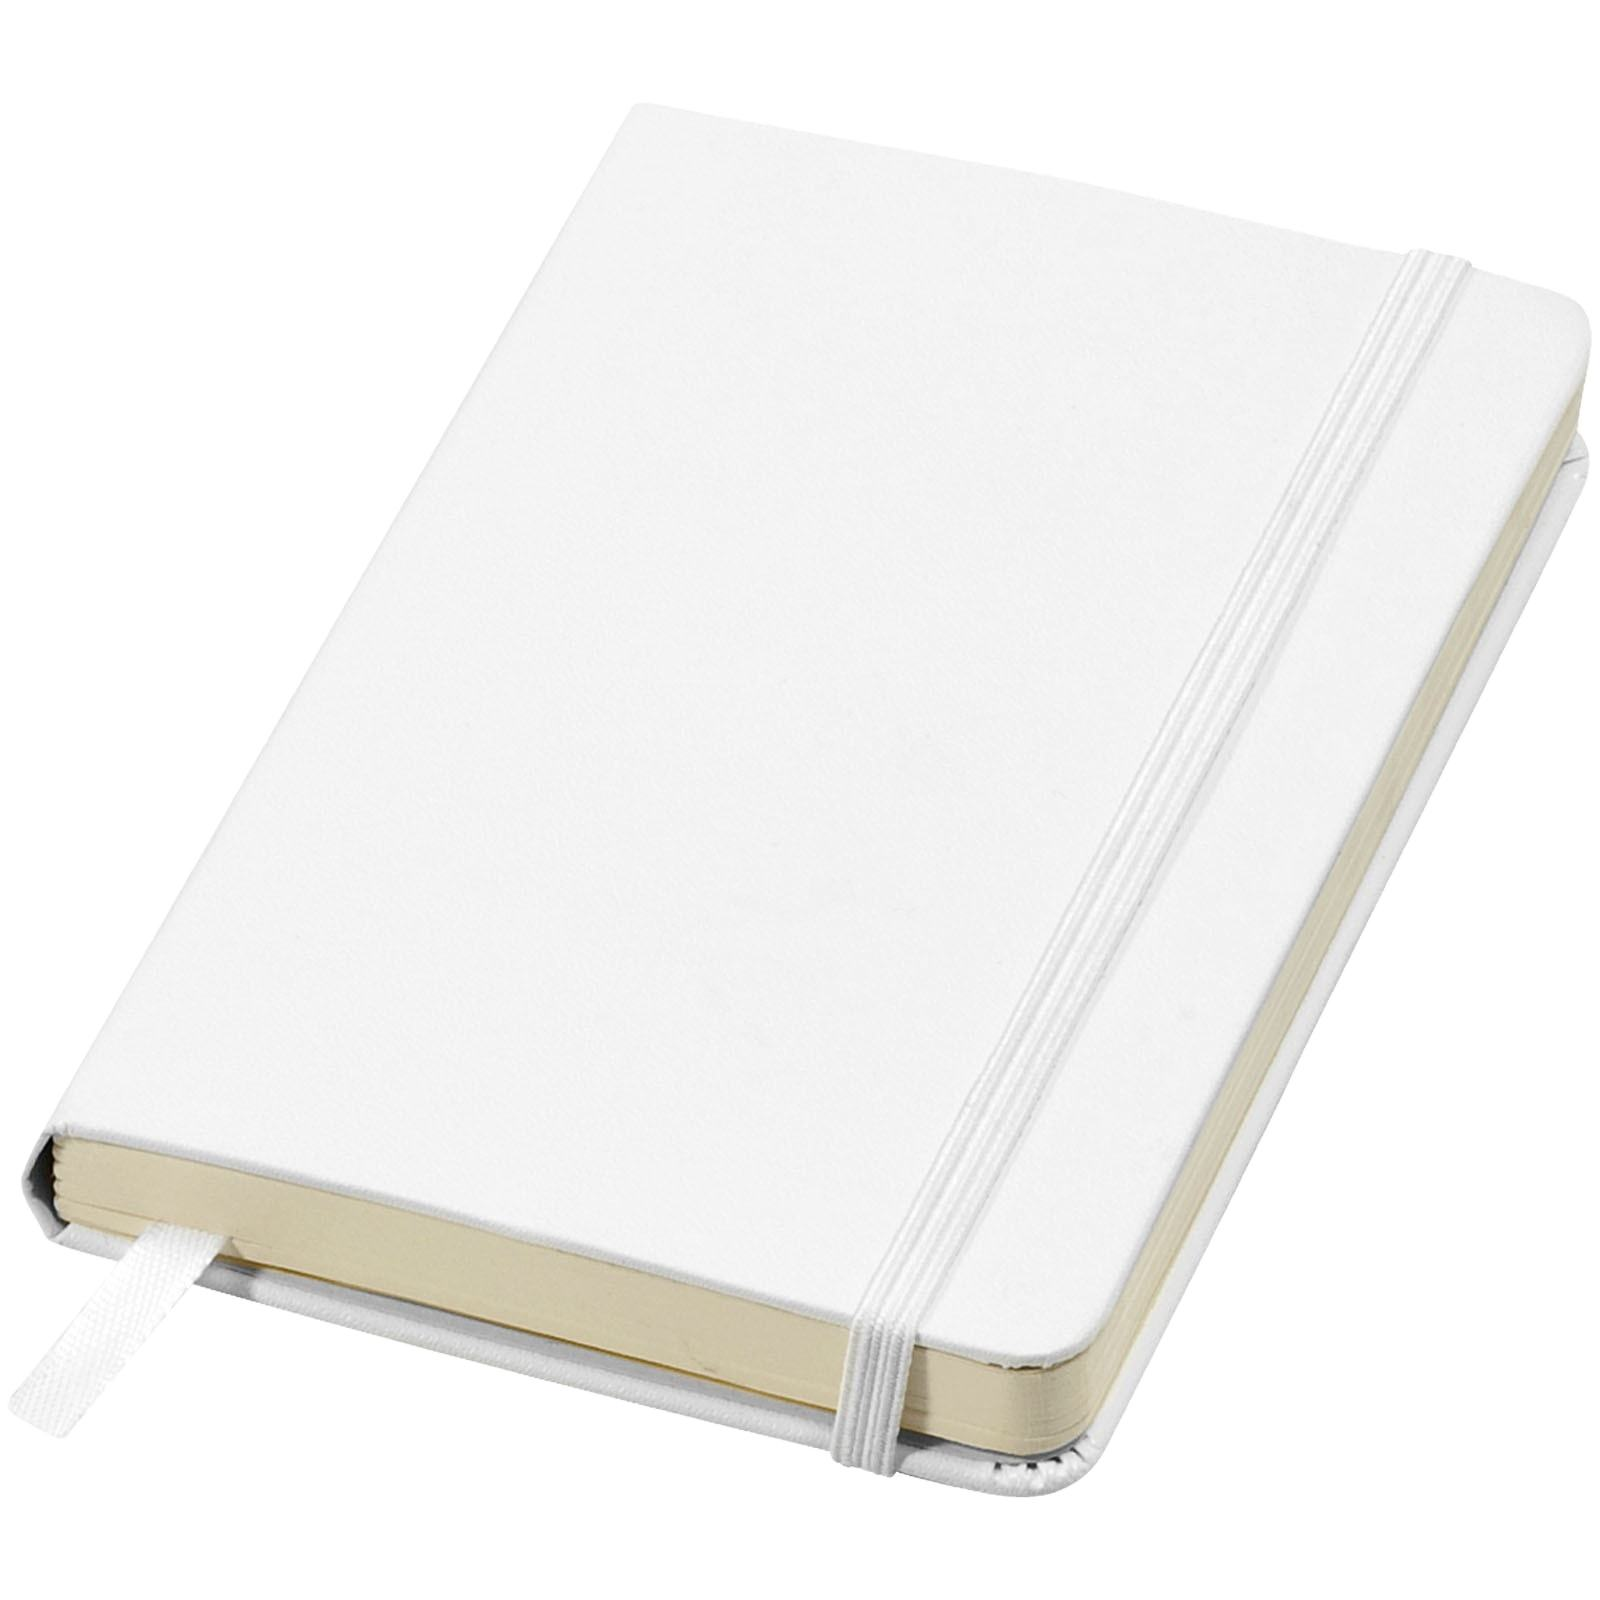 Classic a6 notebook cover blank planner Students Paper Notebook for School